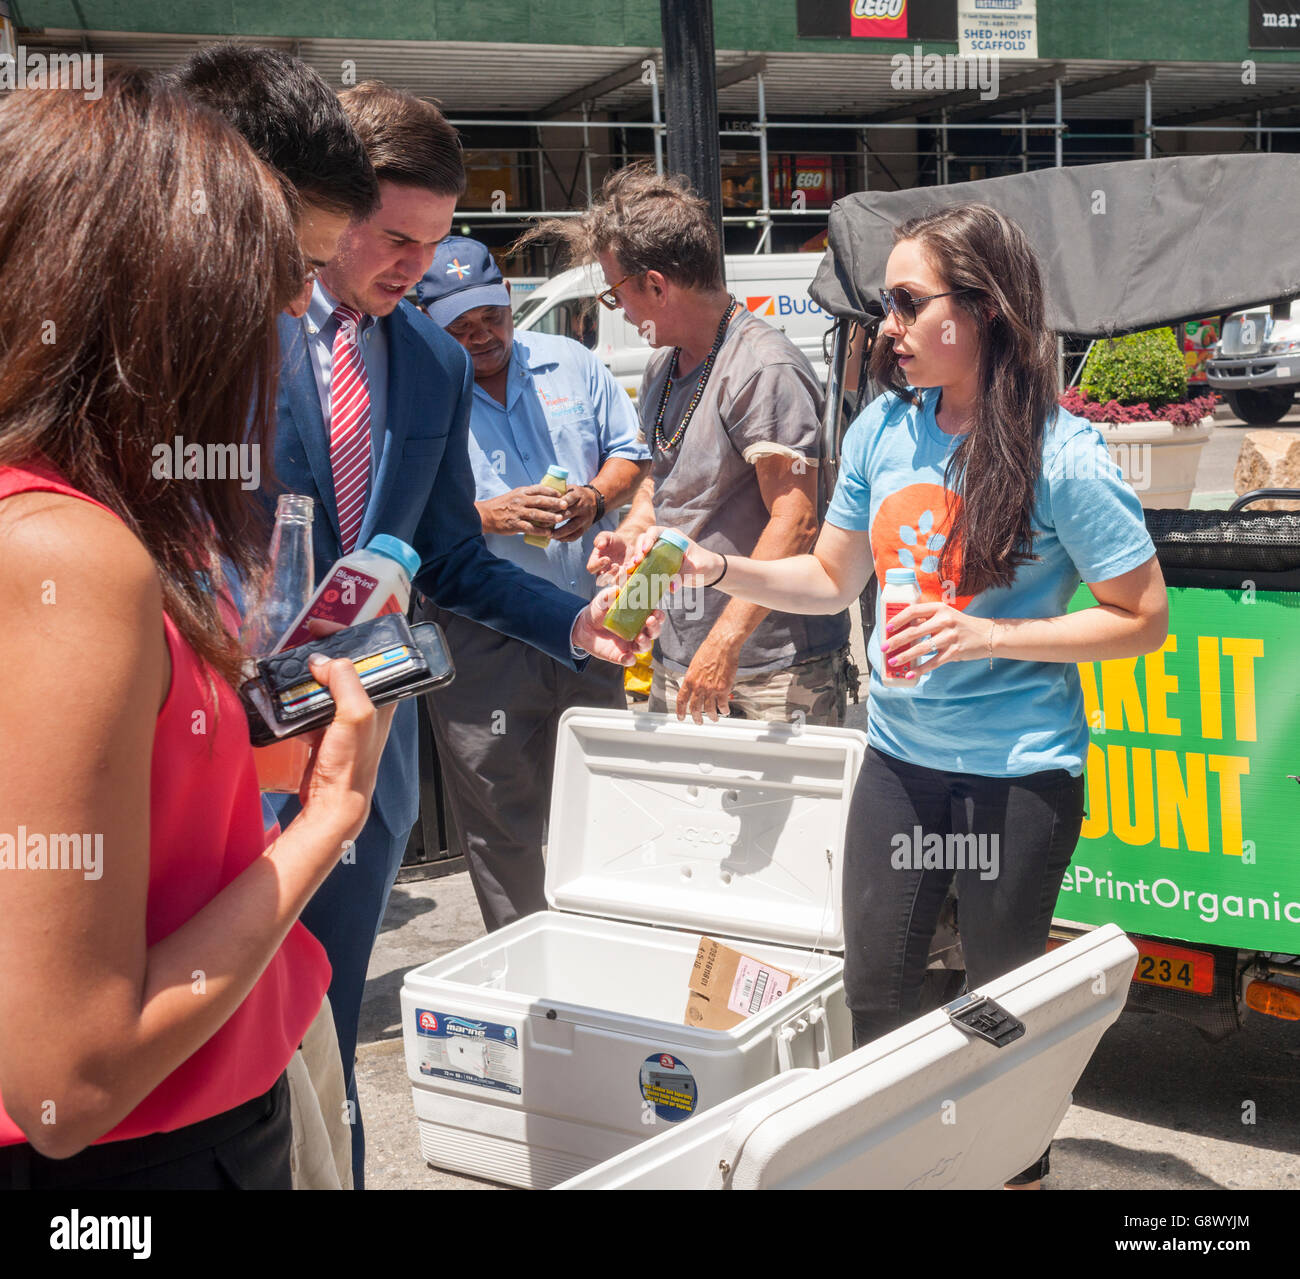 Workers give out samples of blueprint brand organic cleanse in workers give out samples of blueprint brand organic cleanse in flatiron plaza in new york on wednesday june 22 2016 blueprint manufactures organic juices malvernweather Image collections